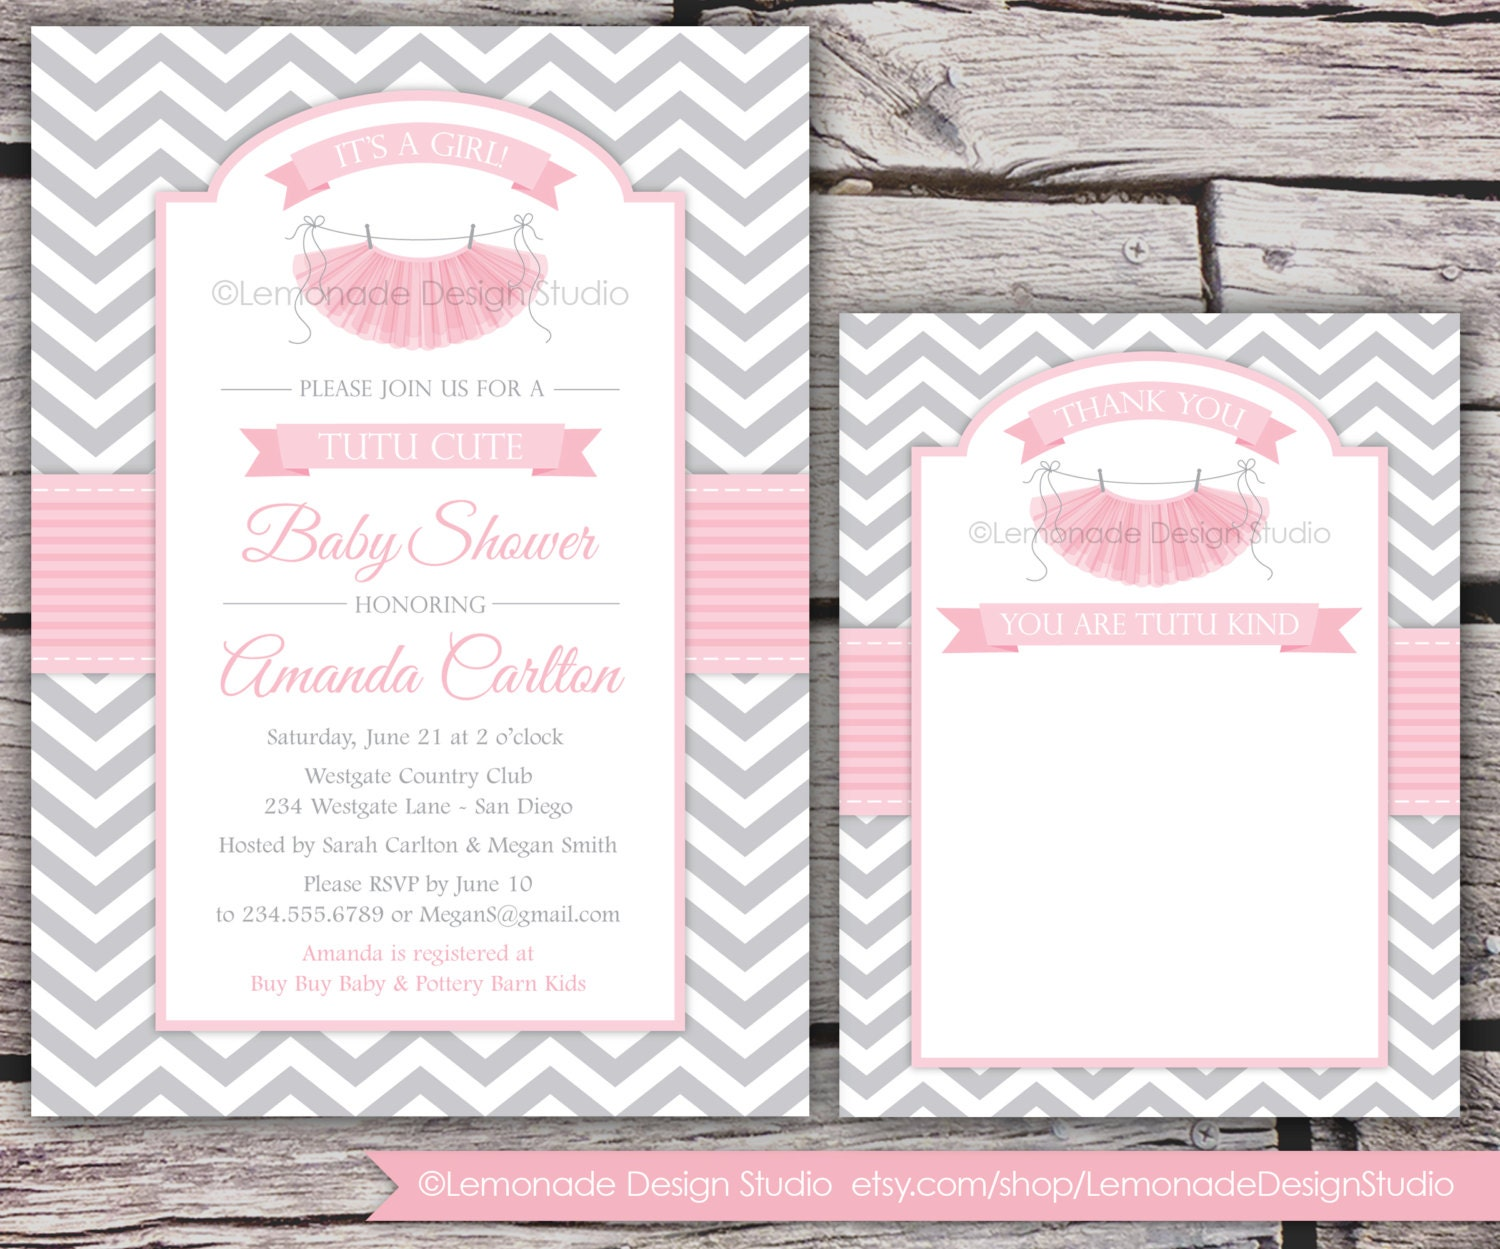 tutu cute baby shower invitation and thank you card chevron, Baby shower invitations